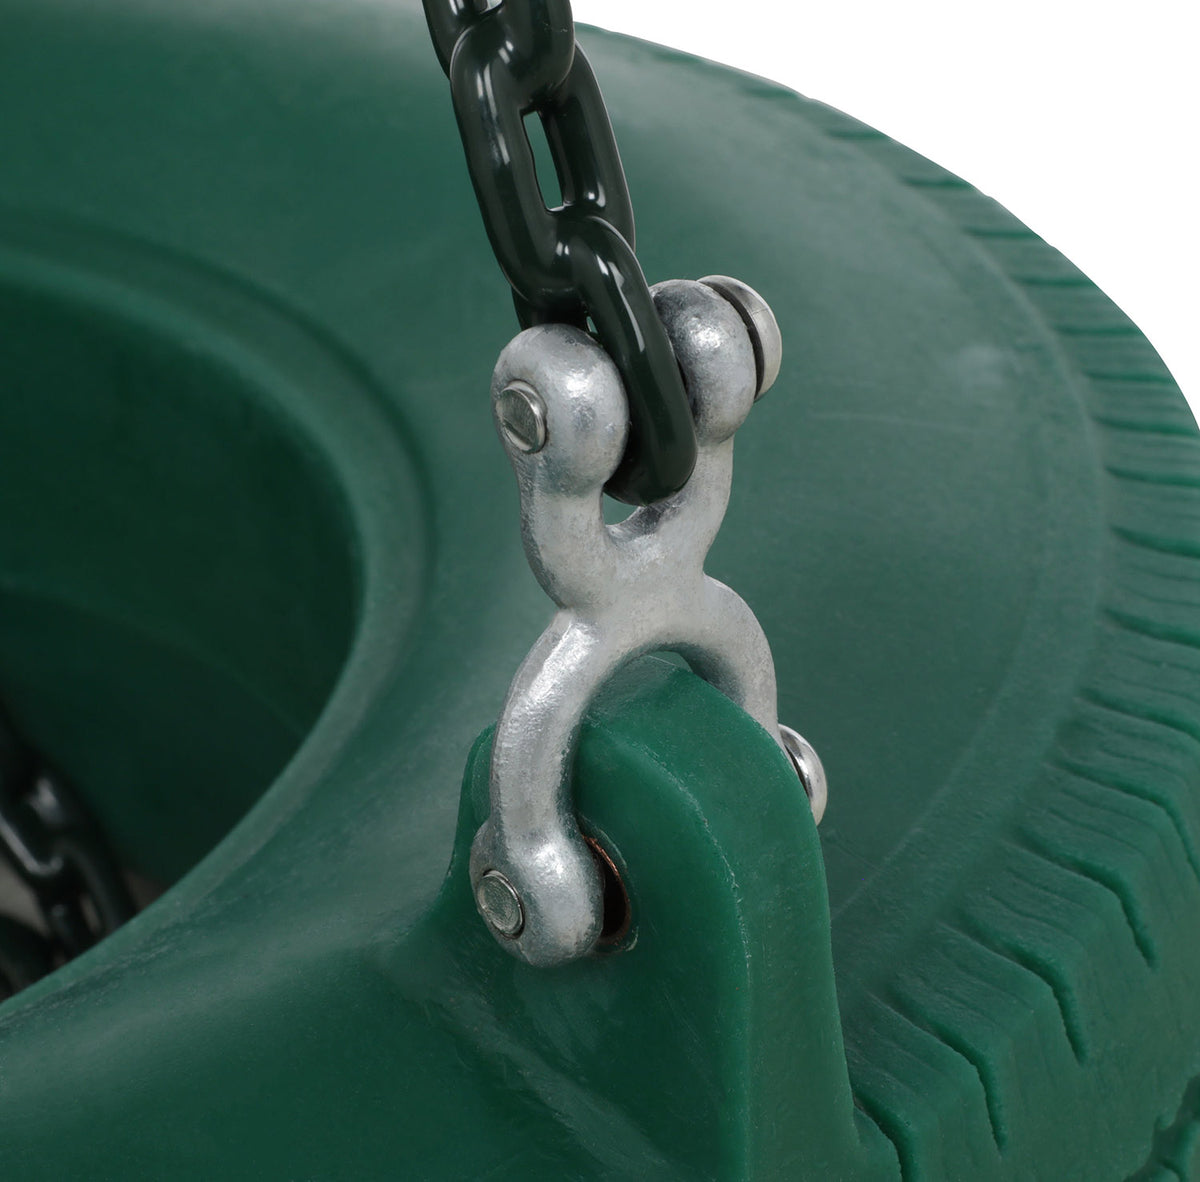 Gorilla-Playsets-Tire-Swing-Green-Close-Up